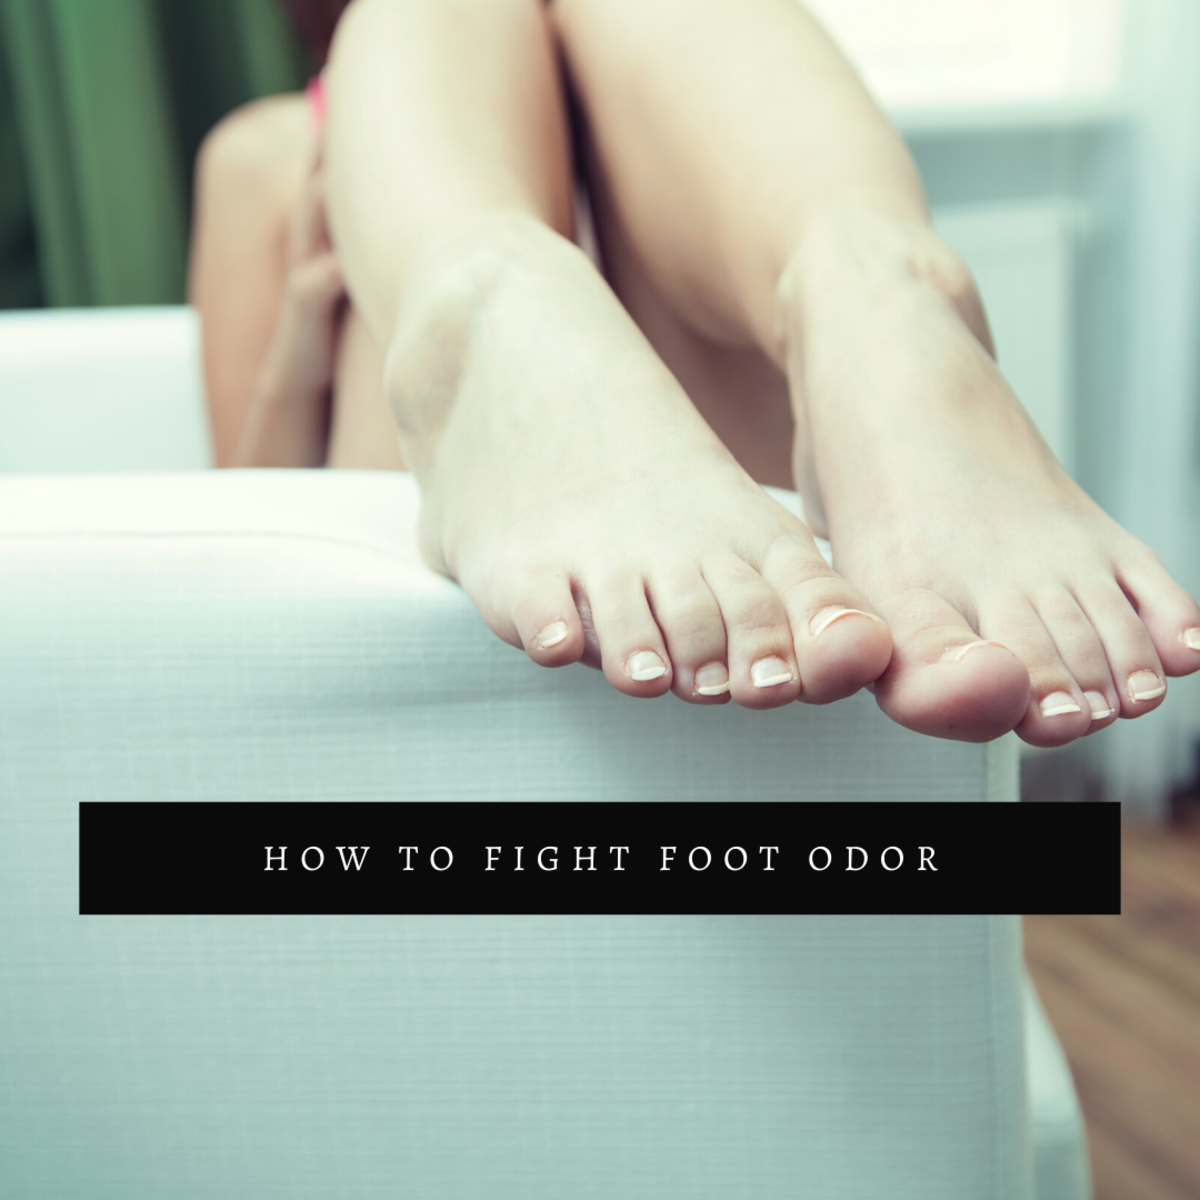 Ban foot odour for life!